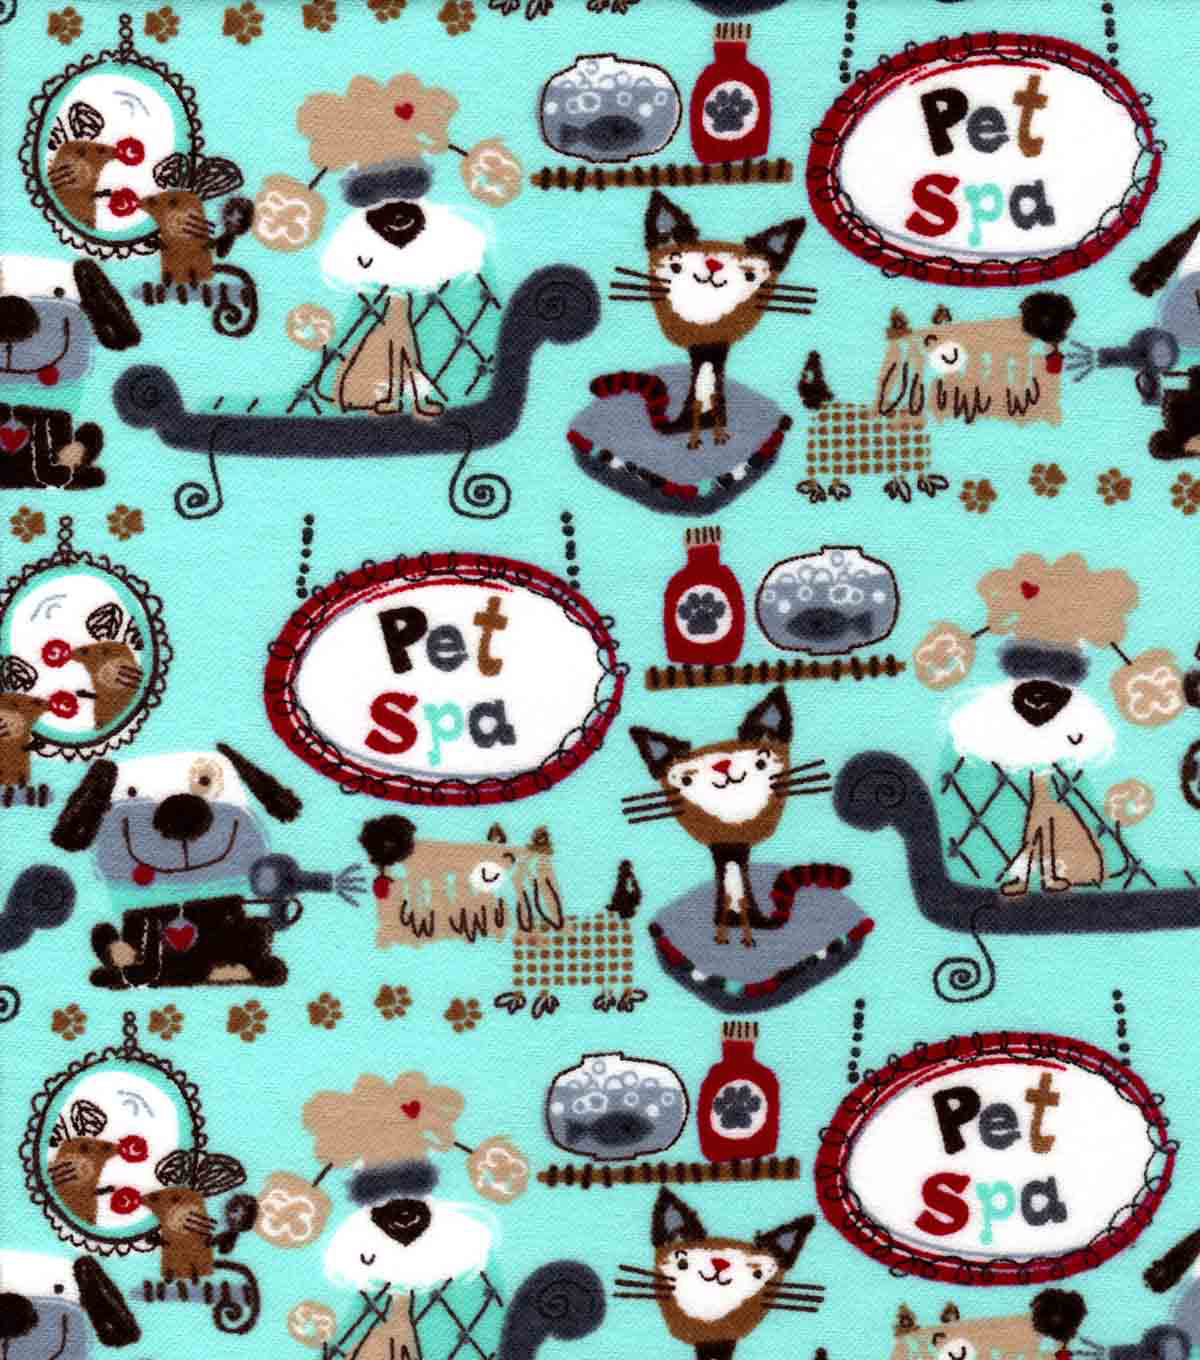 Snuggle Flannel Fabric -Pet Spa Day